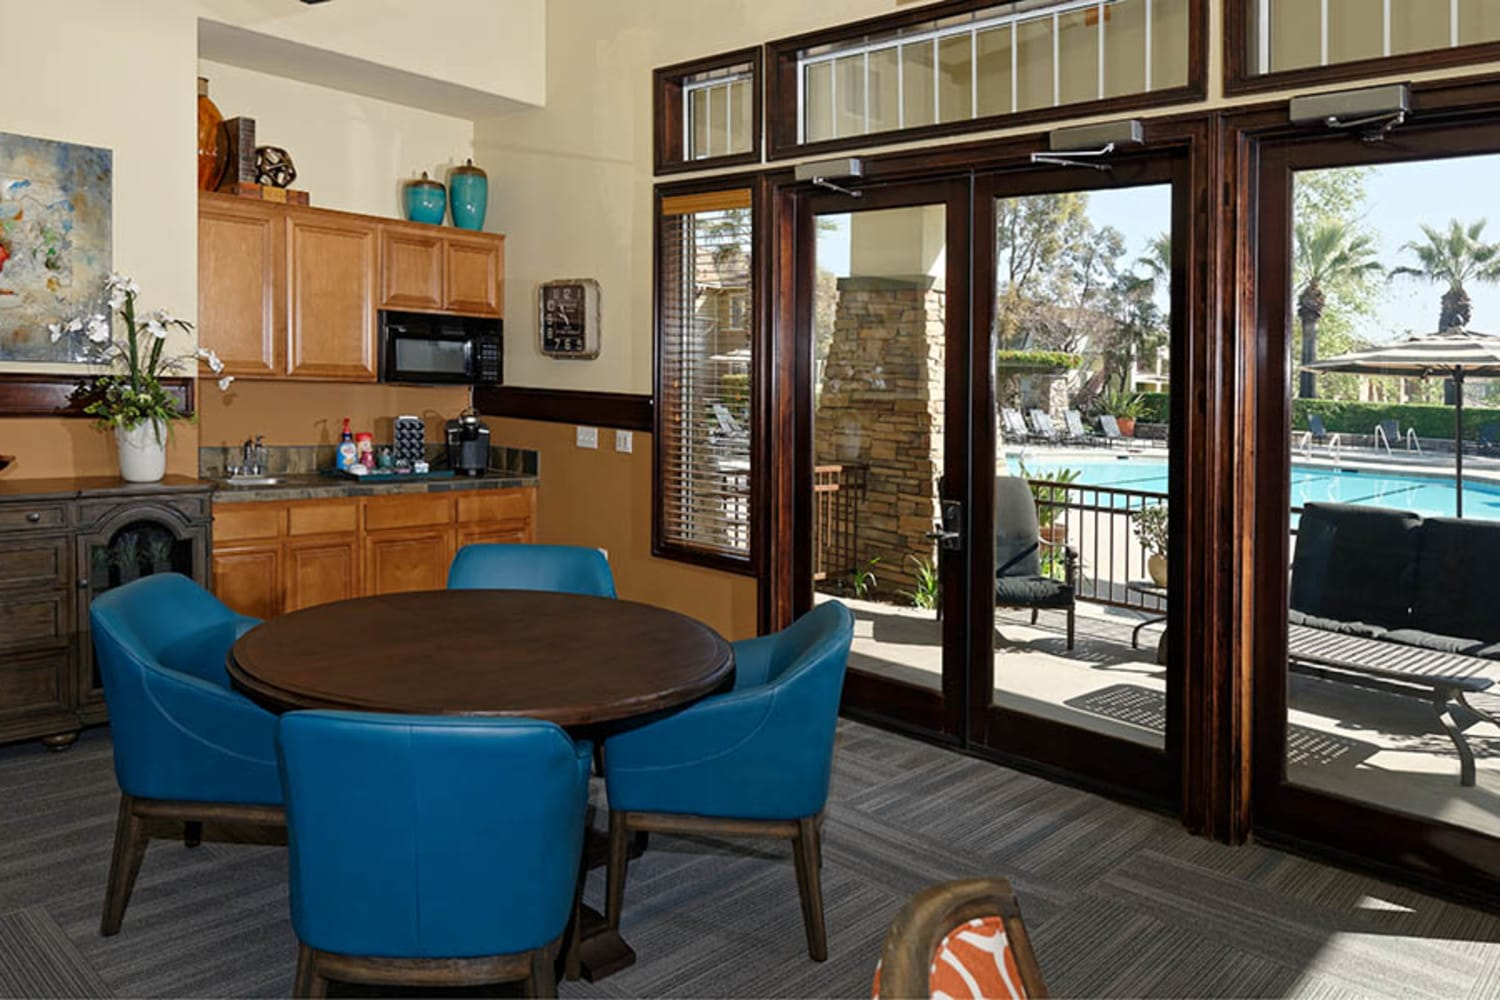 Clubhouse tables and kitchenette at Camino Real in Rancho Cucamonga, California